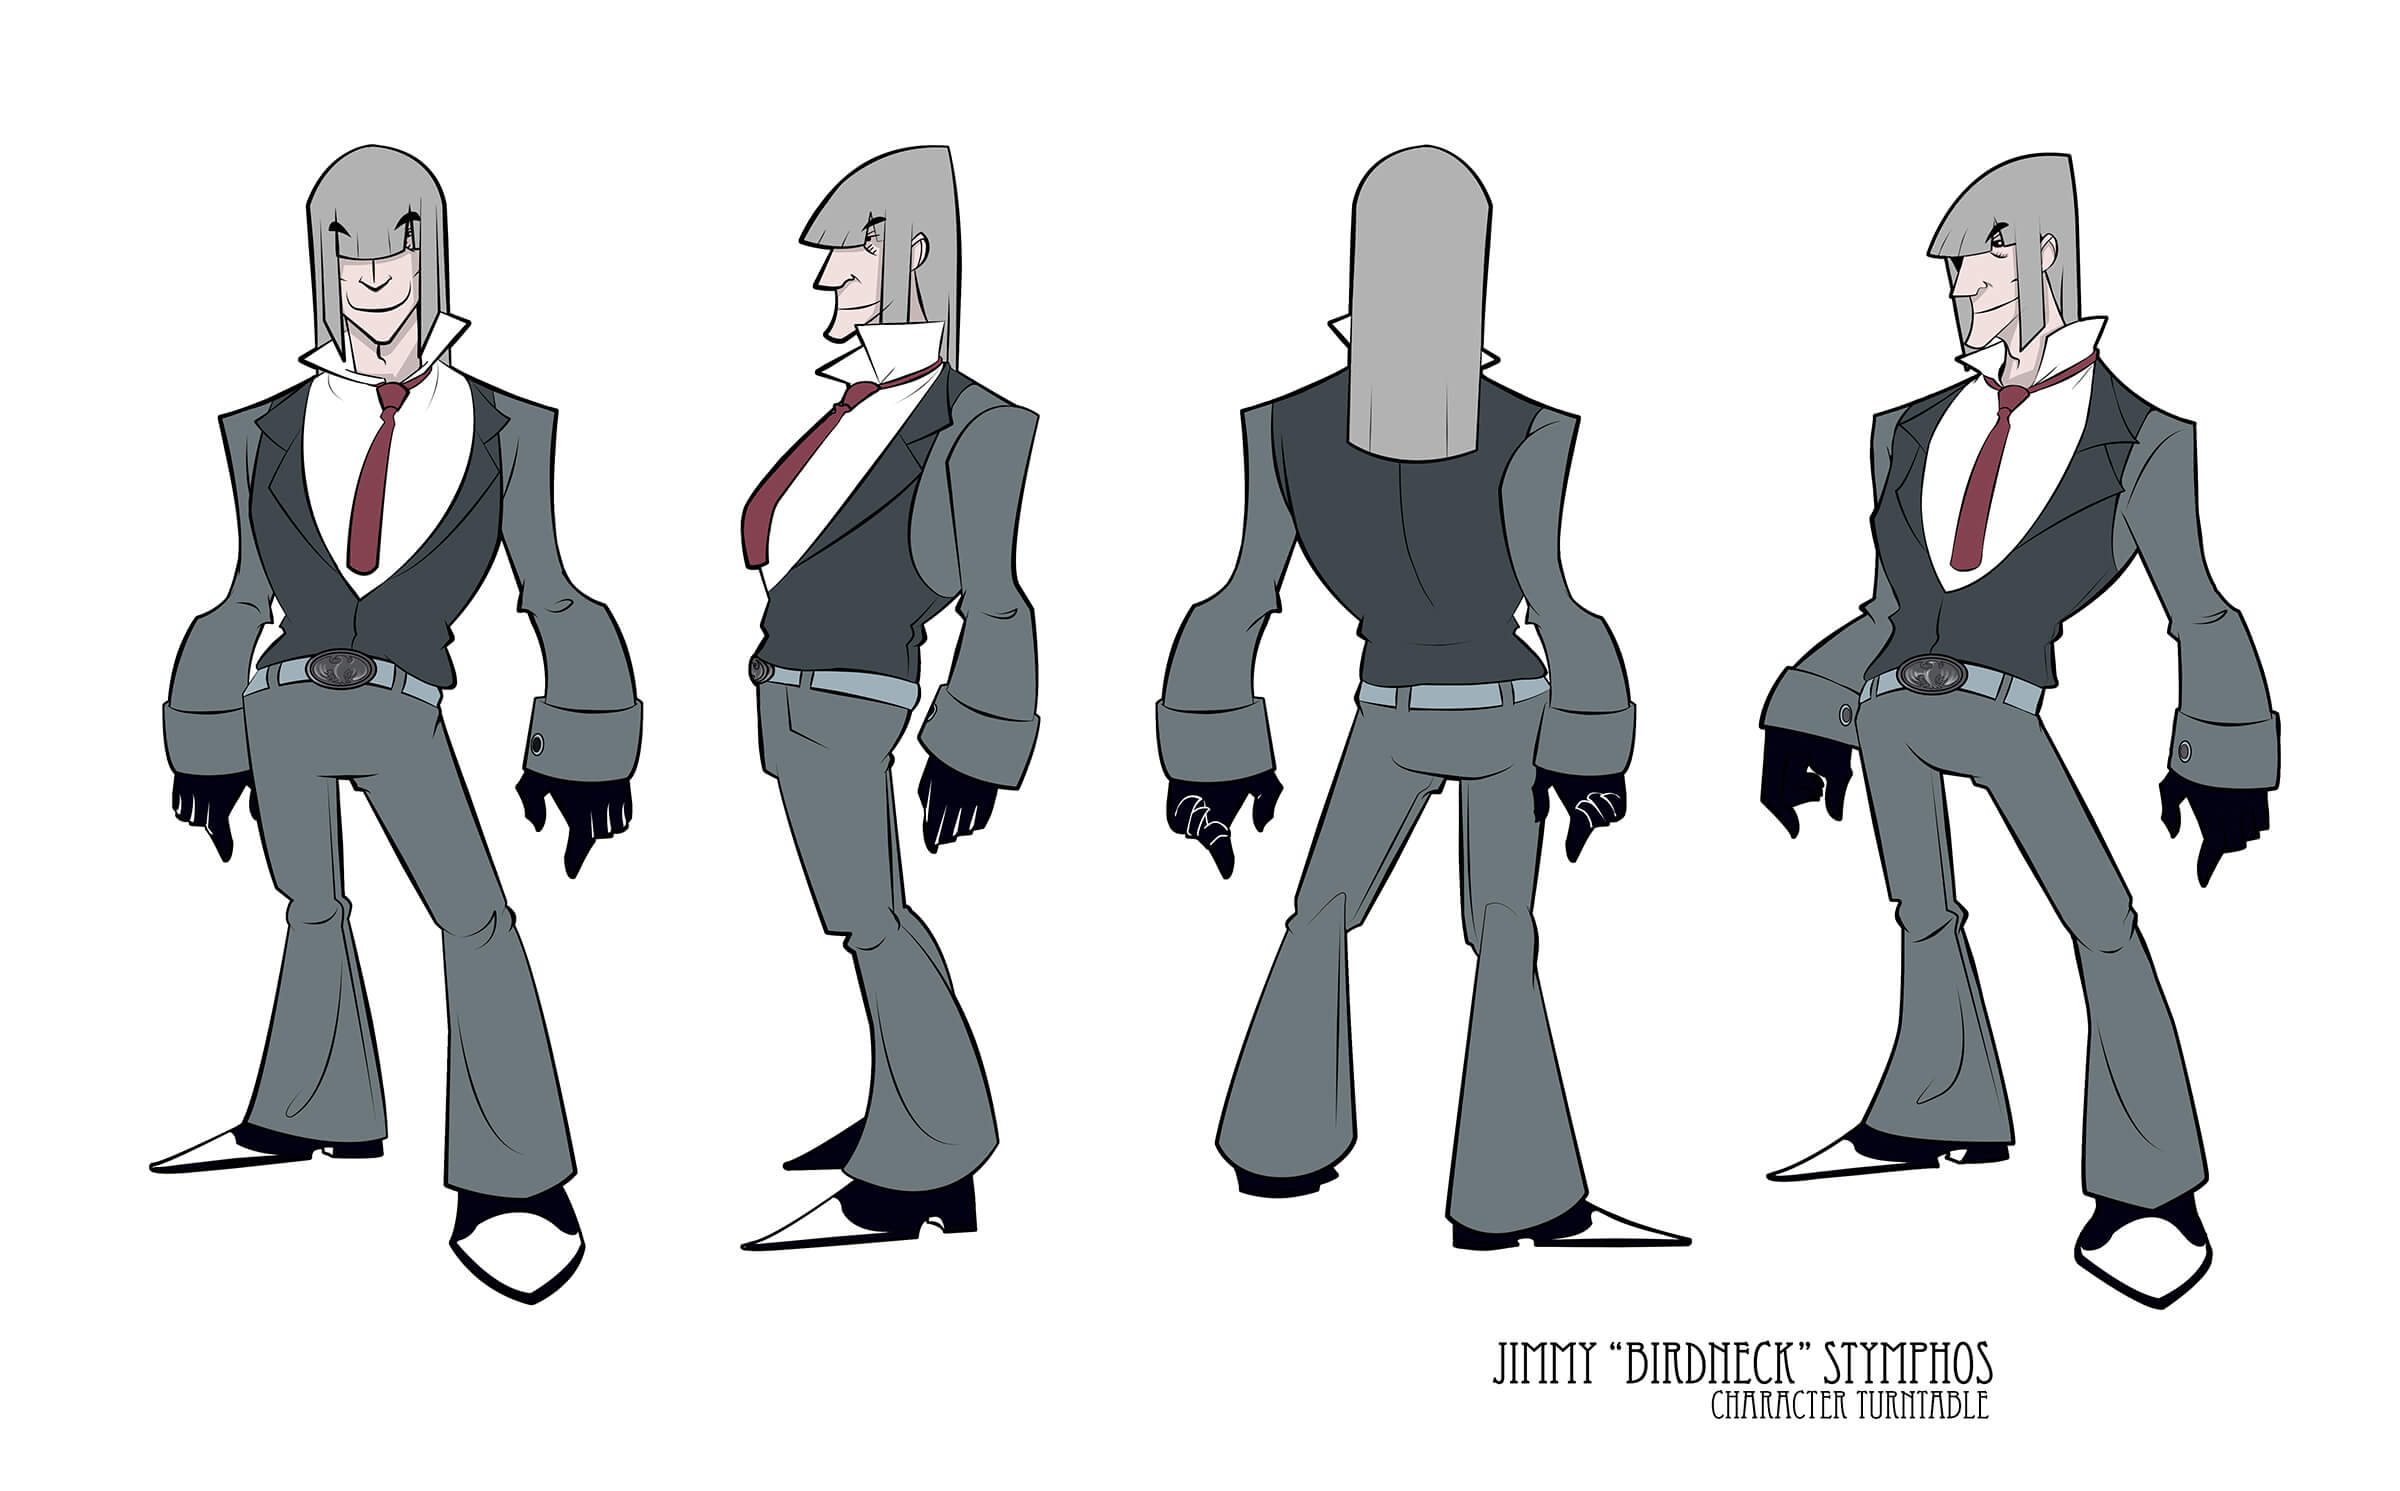 Turnaround sketches of a man with shoulder-length gray hair in a charcoal suit, standing with his torso jutting forward.